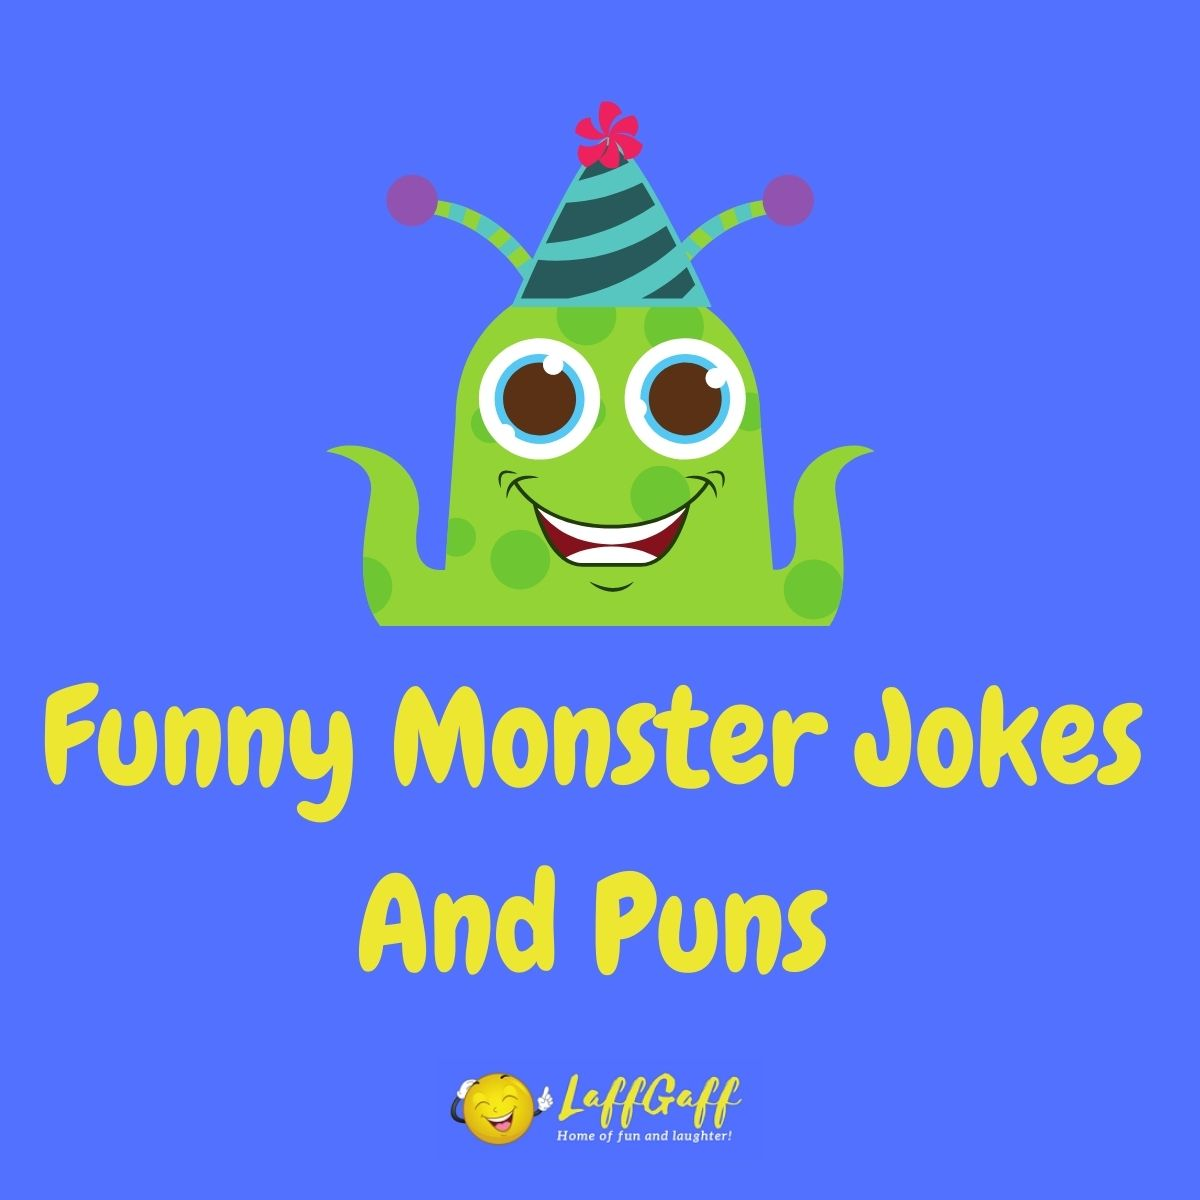 Featured image for a page of funny monster jokes and puns.